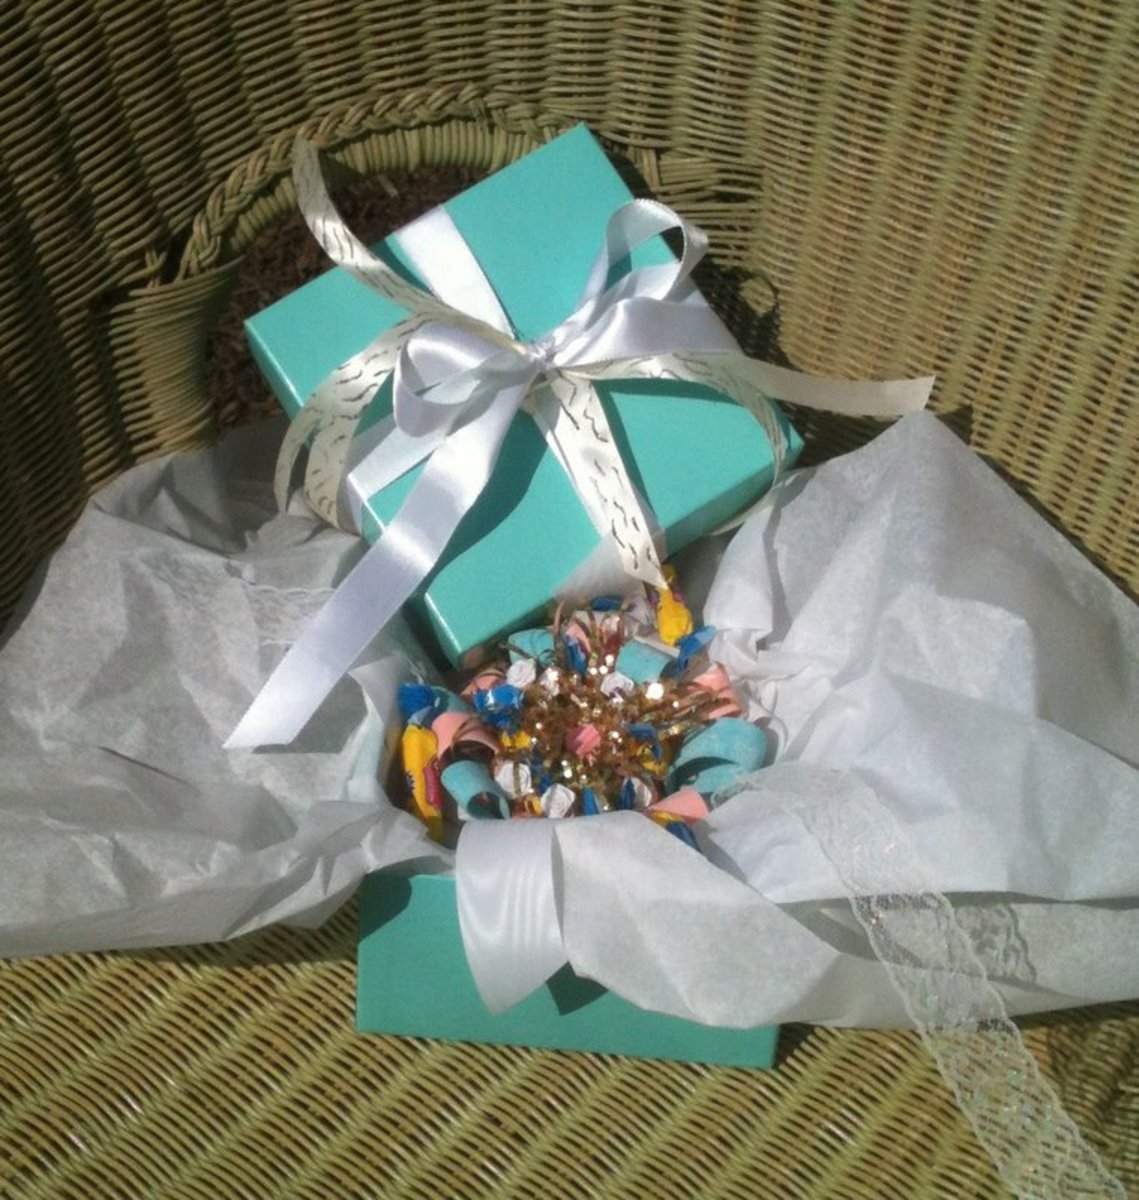 The long lace pieces of ribbon were tied into a bow, securing the corsage on the wrist. White tissue paper protected the corsage inside the white and gold-ribboned box.